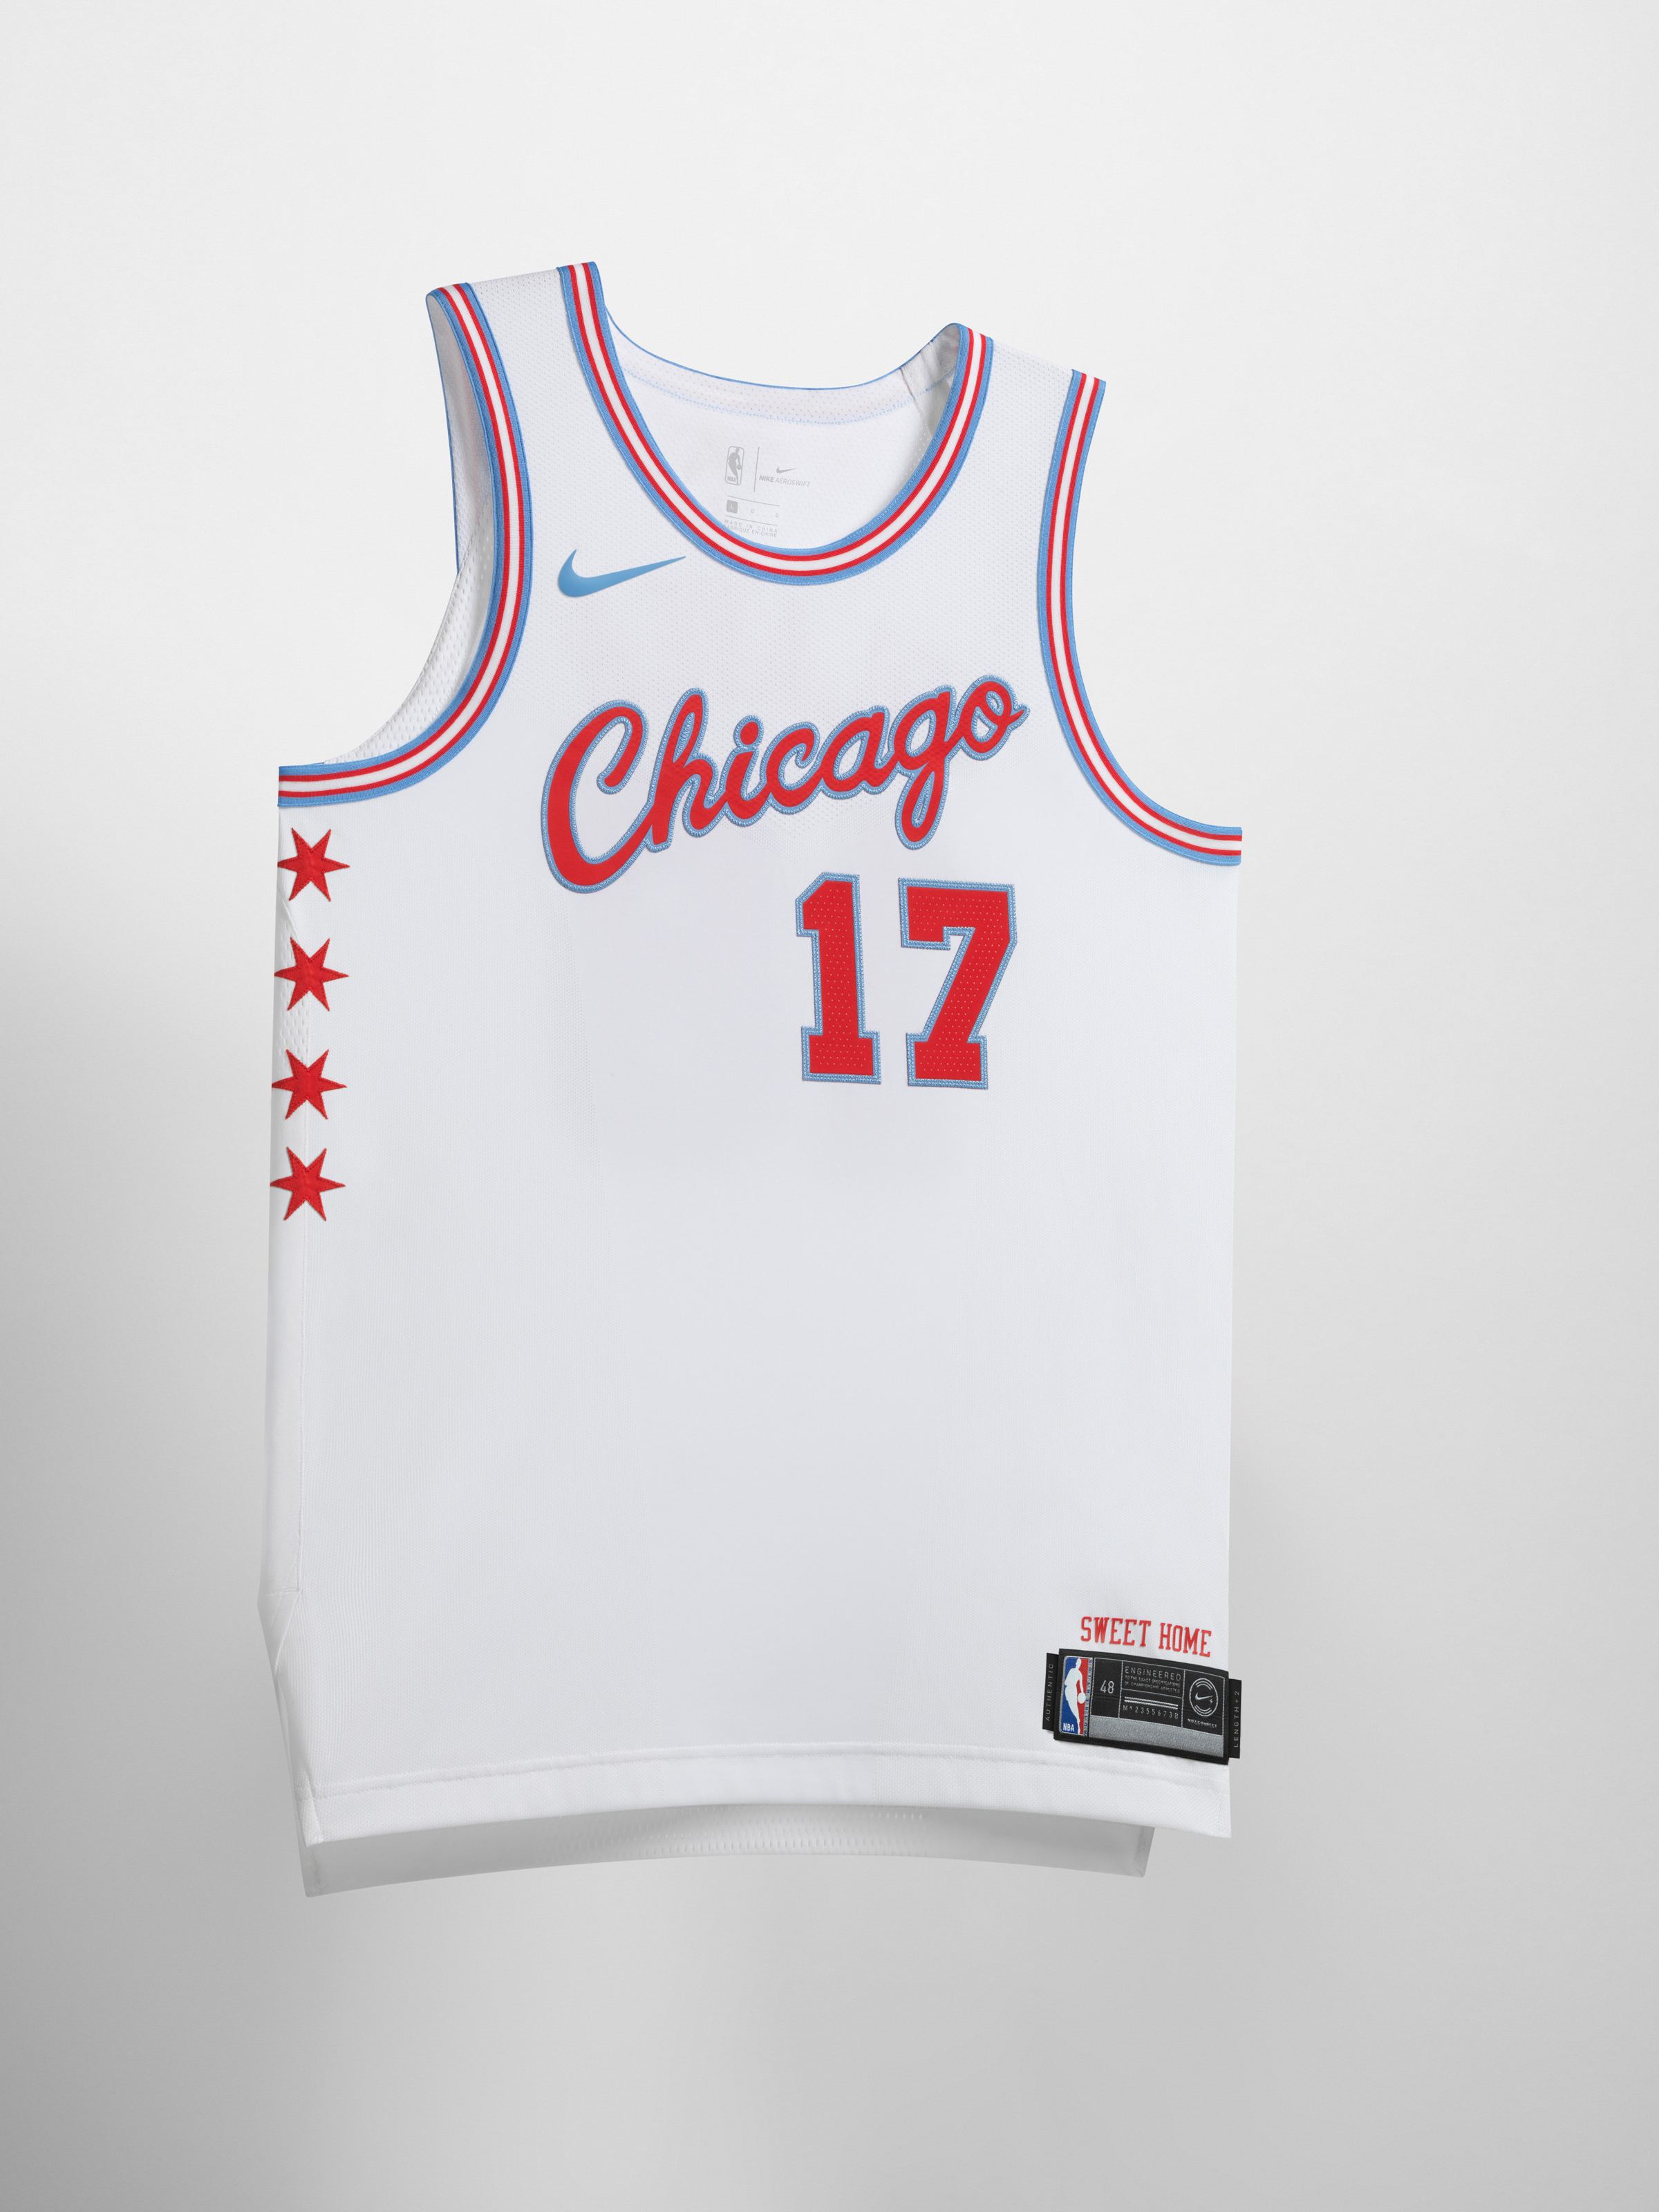 Nike unveils City Edition uniforms for 26 NBA teams ffc8359f7